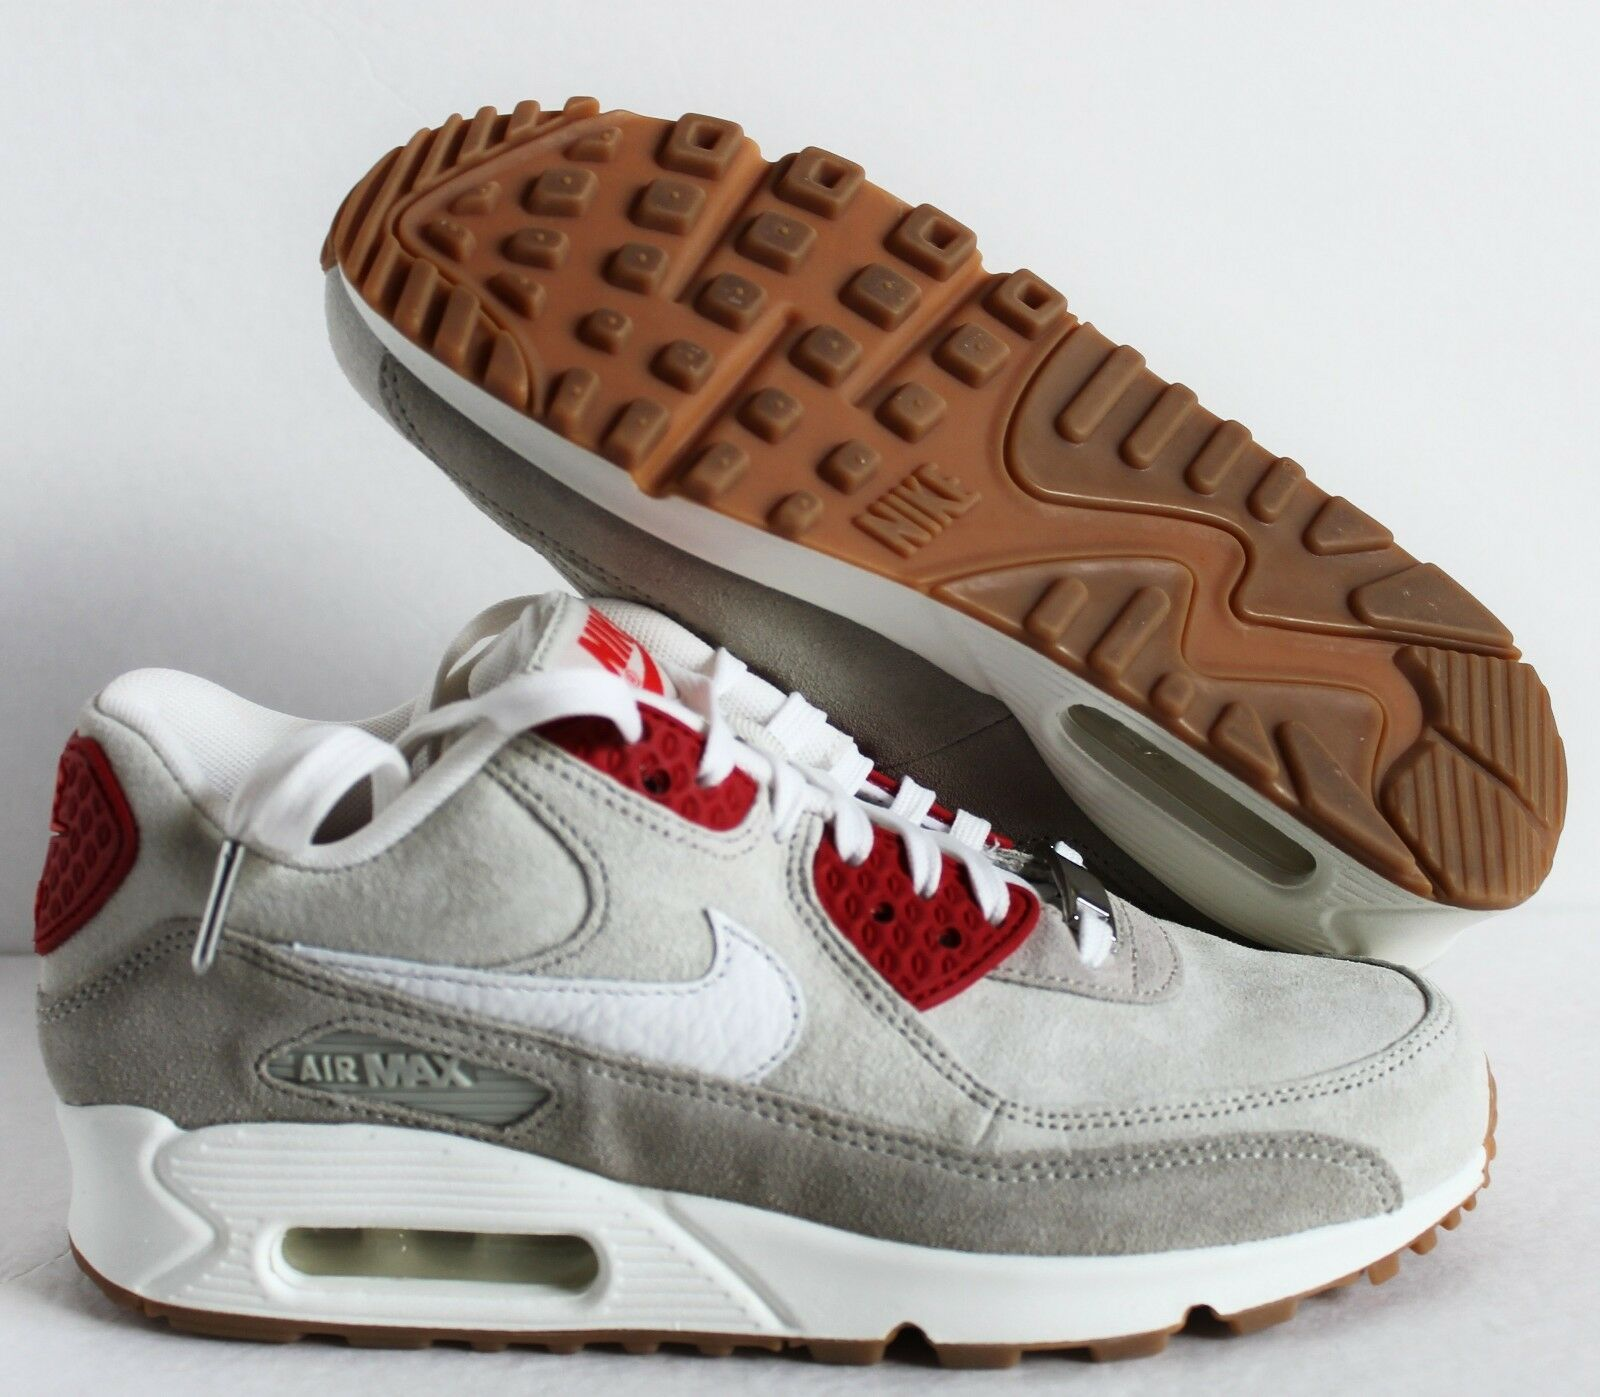 NIKE WMNS AIR MAX 90 QS BEIGE-SUMMIT WHITE